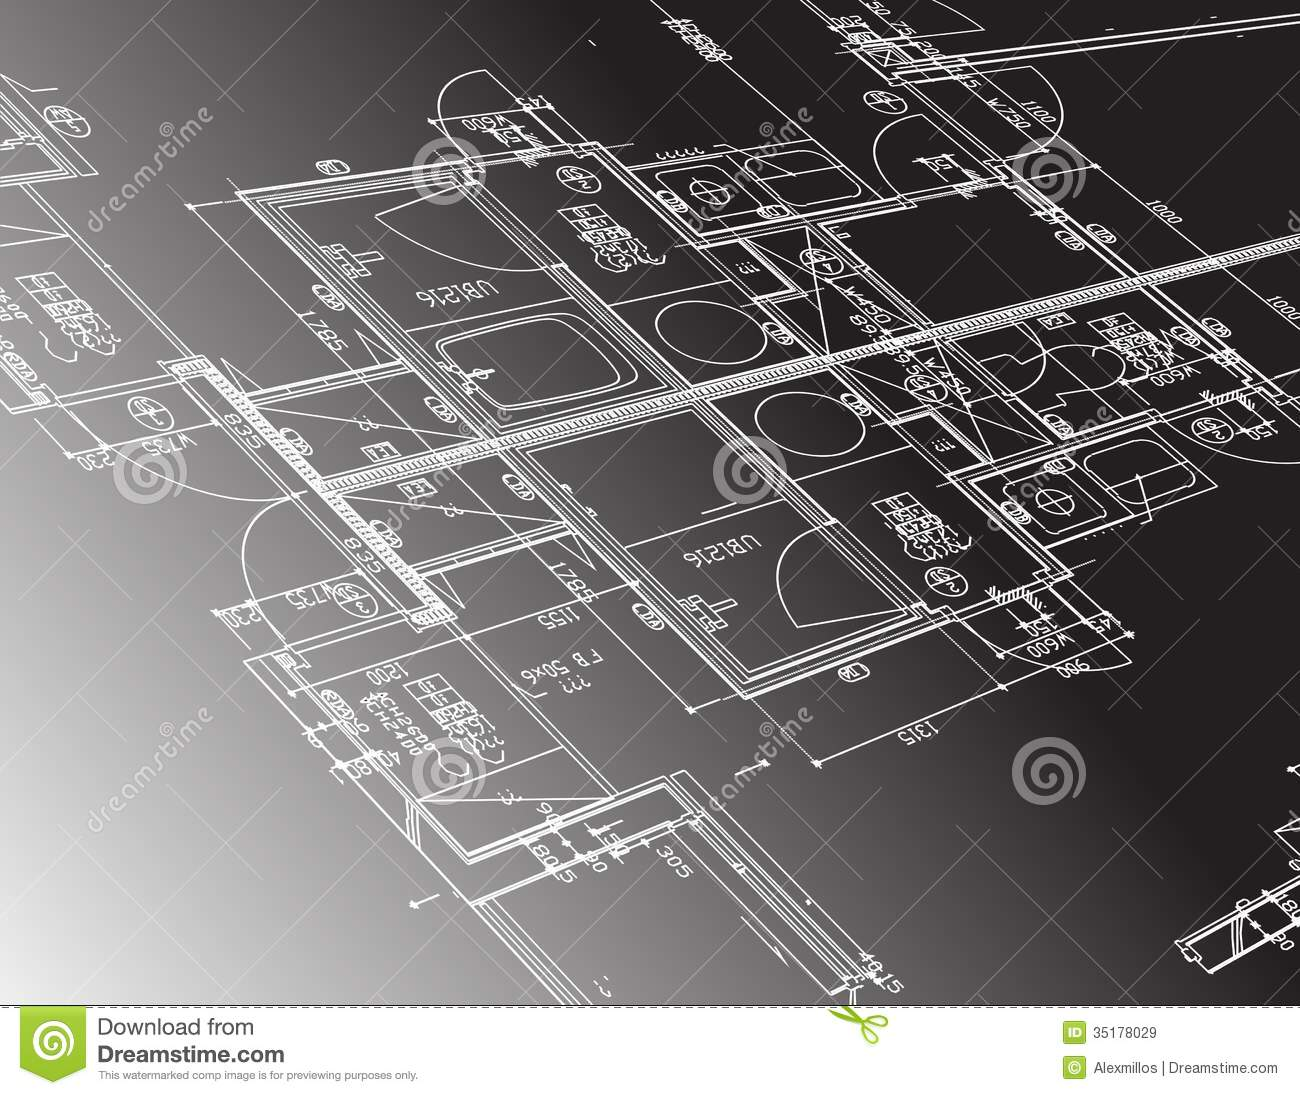 Conception d 39 illustration de guide de plan d 39 architecture for Architecture de plan libre